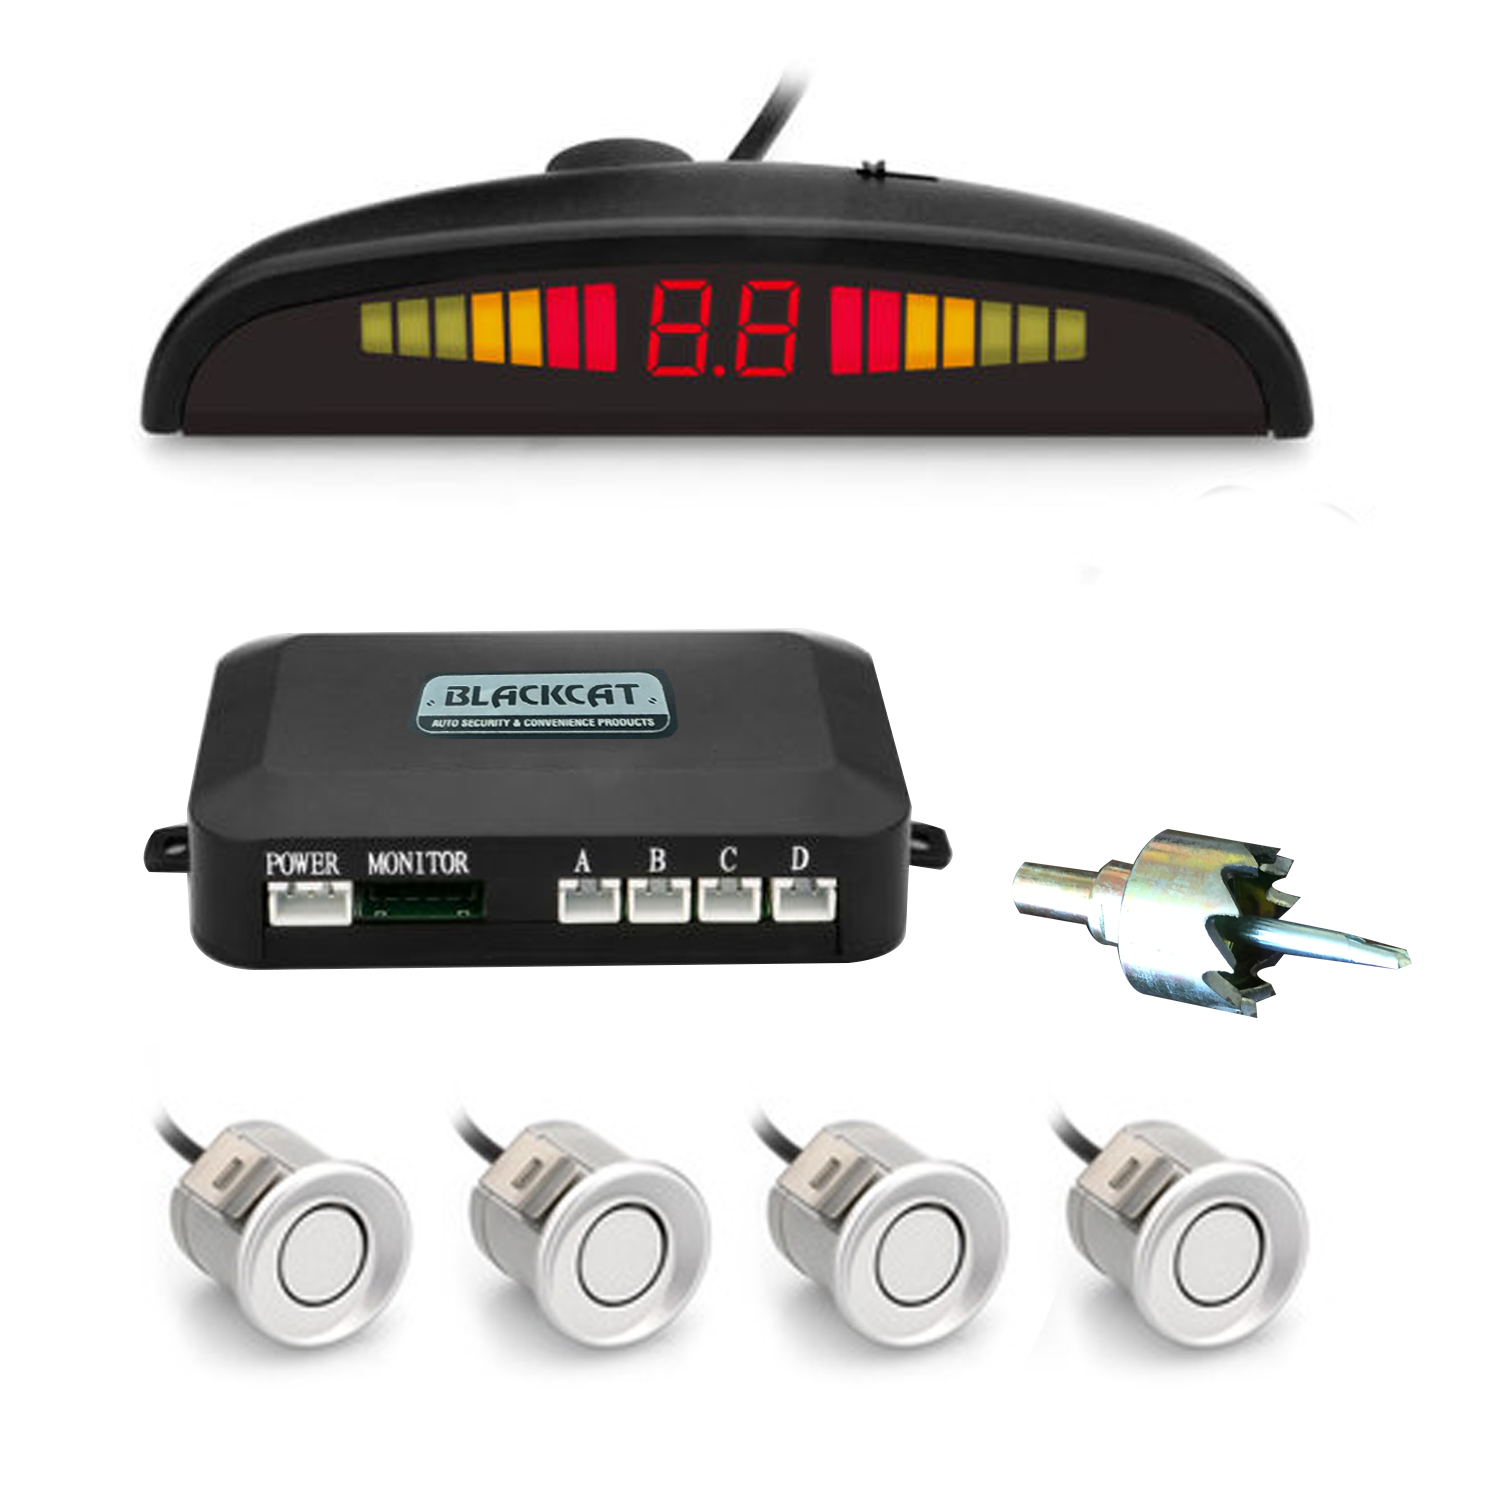 Blackcat Car Reverse Parking Sensor & Screen (LED) on Dashboard with Human Voice; 4 ultrasonic sensors